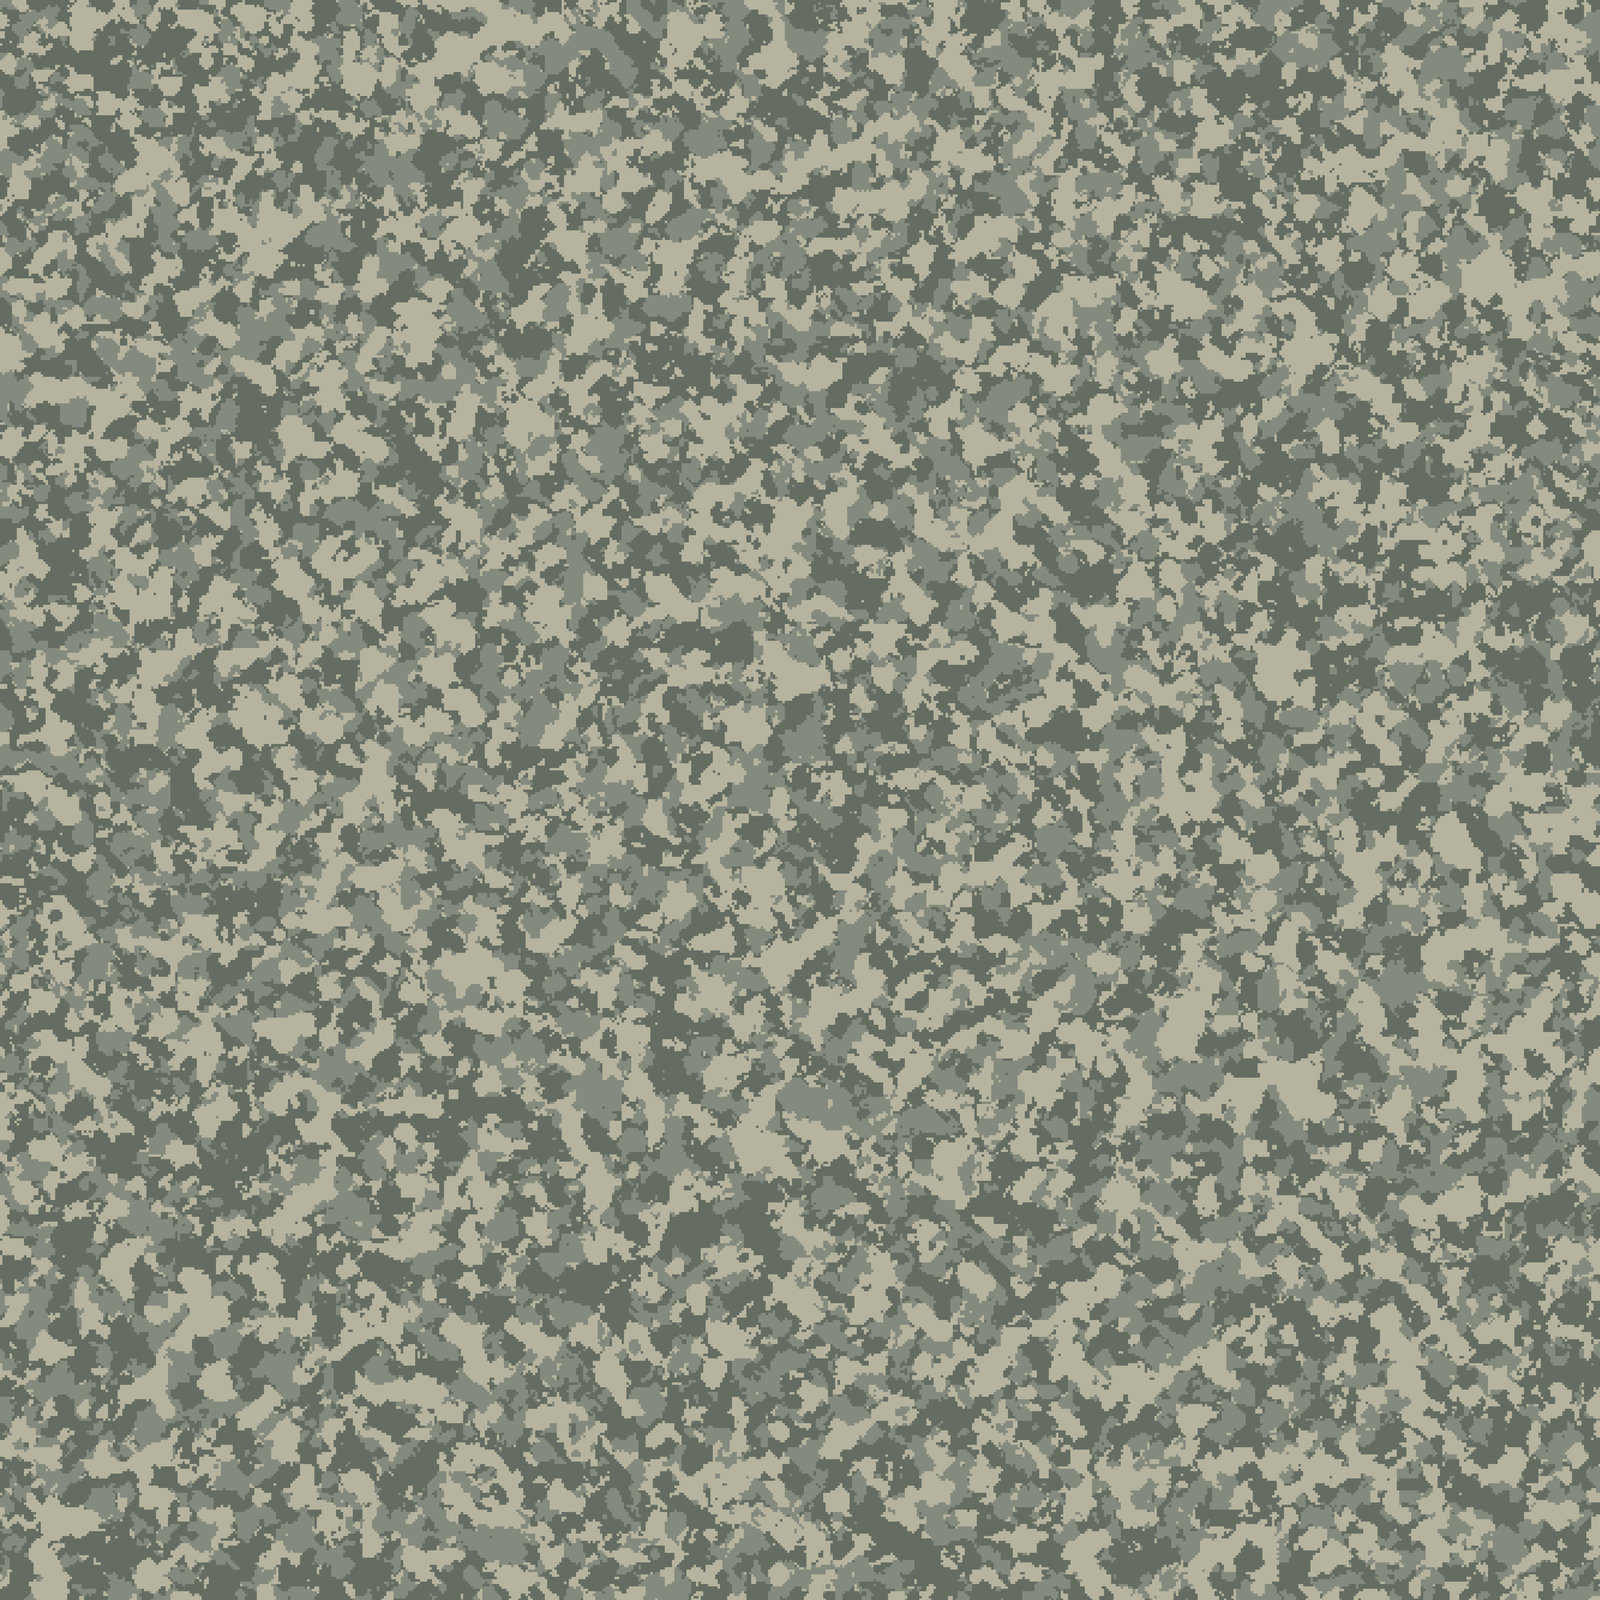 Digital Camo Wallpaper Gen1 universal digital camo by 1600x1600